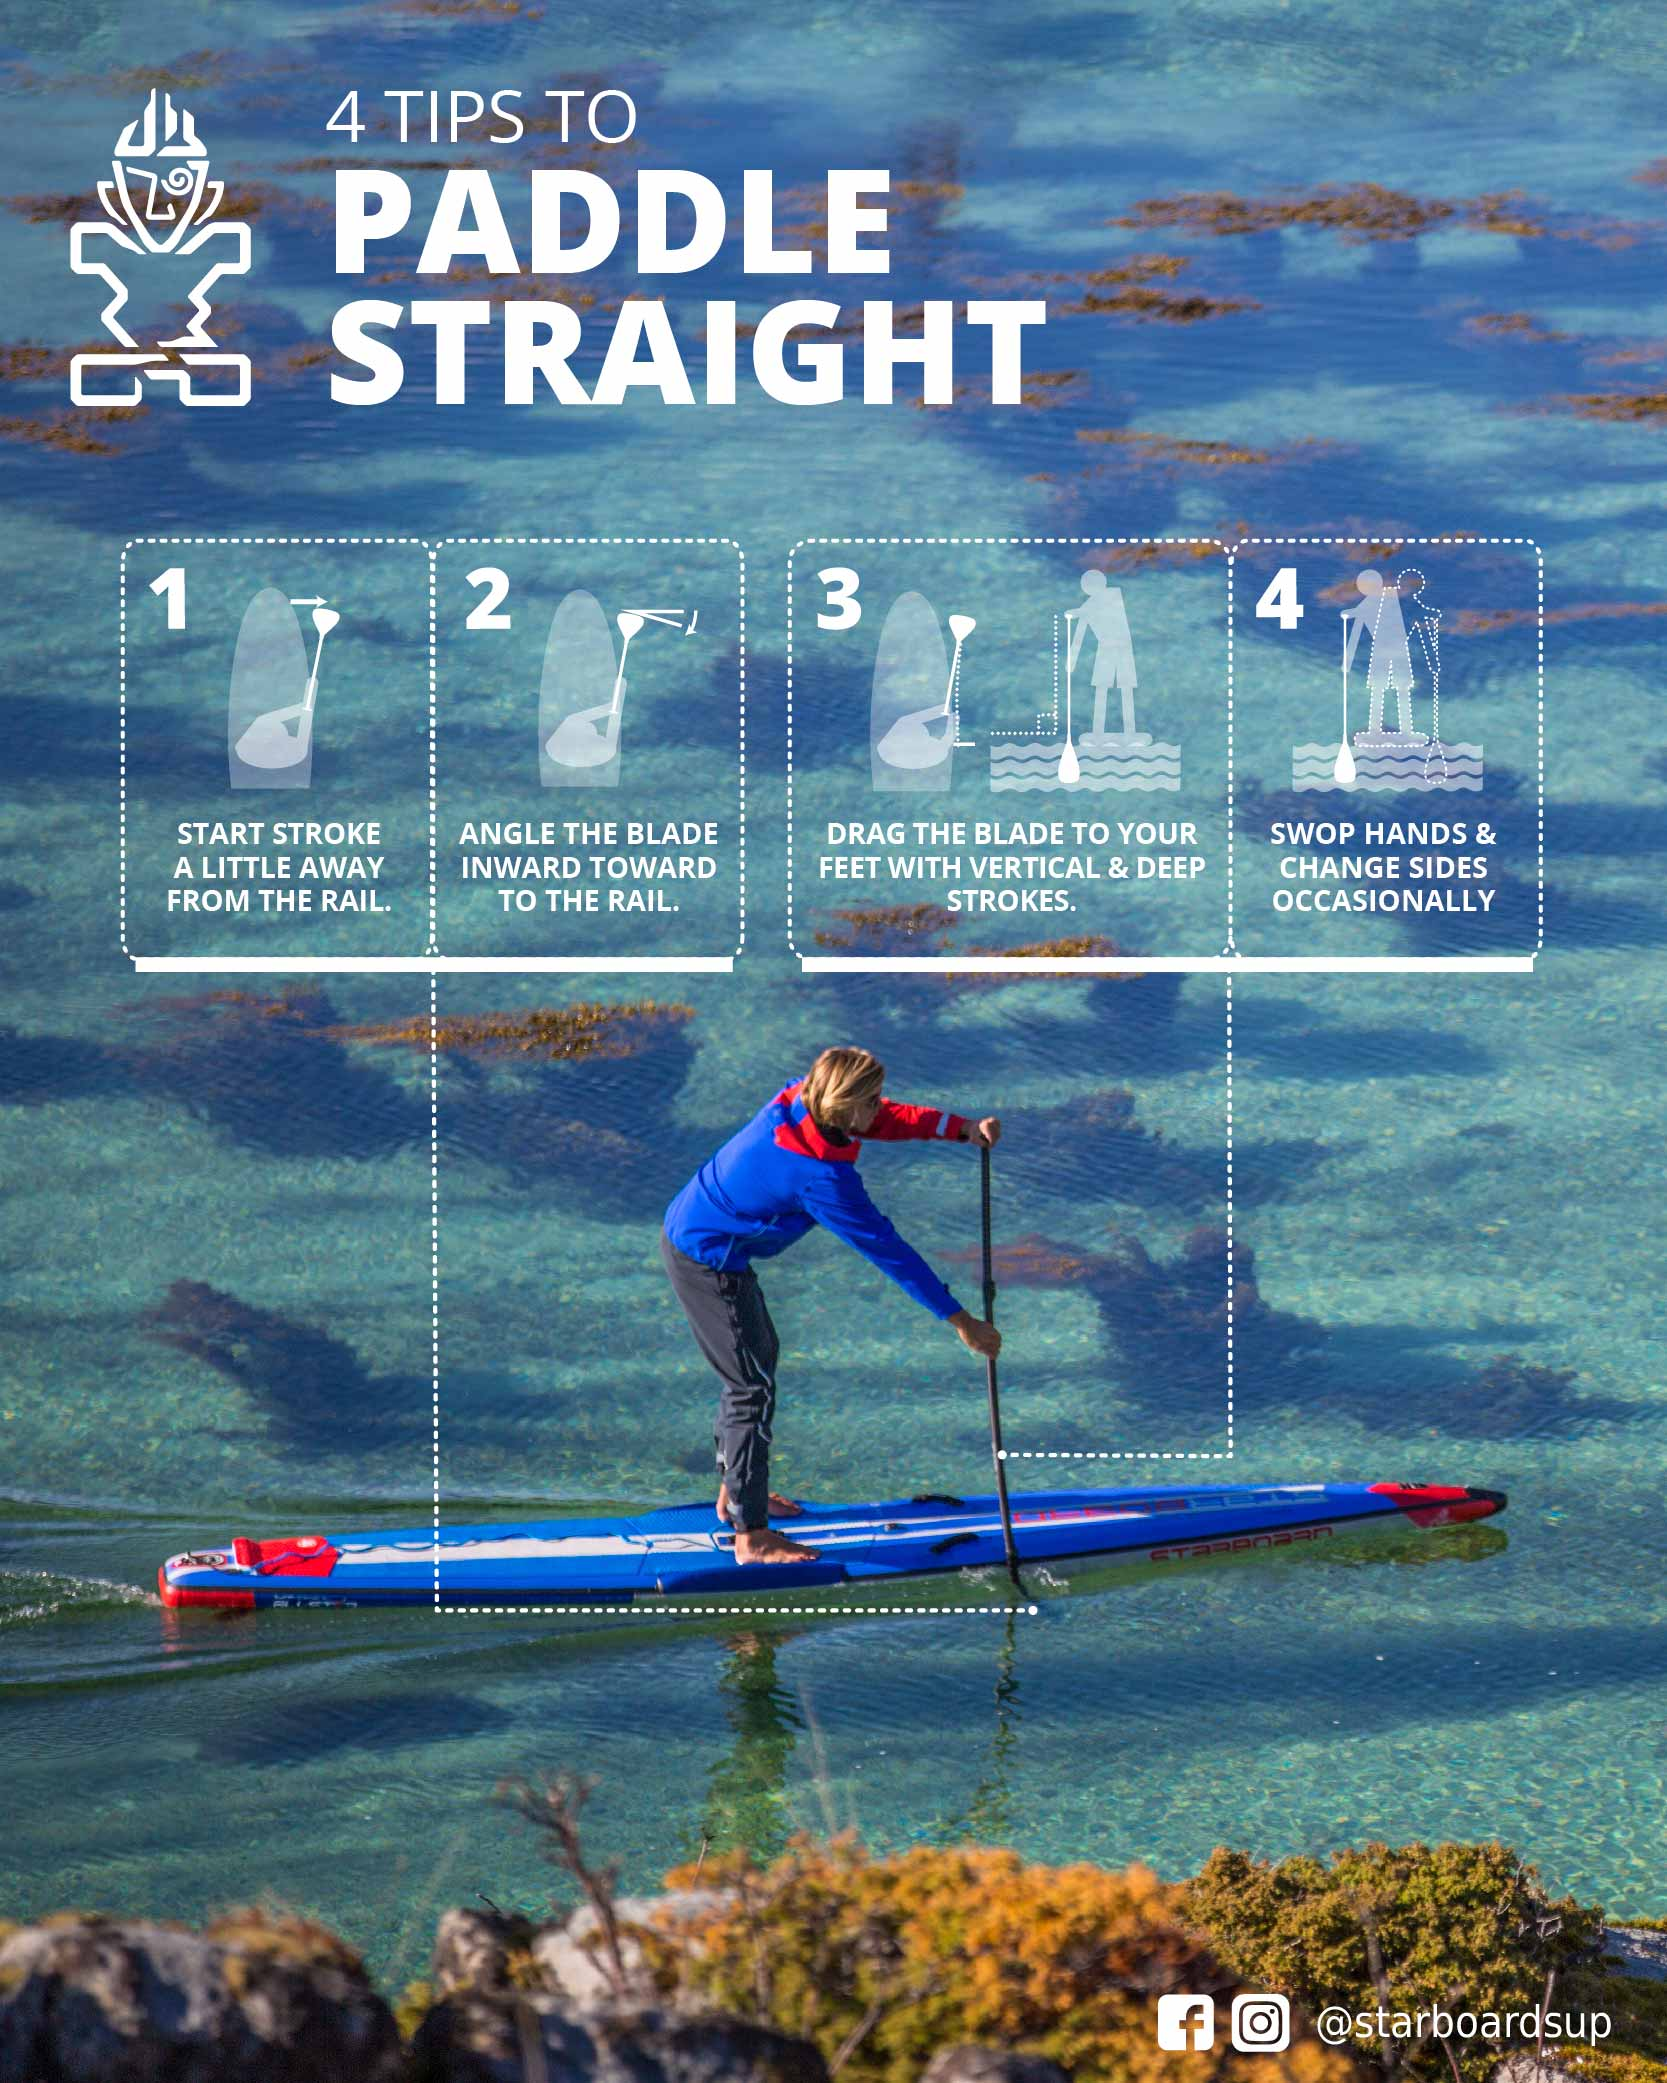 4 SUP Paddling Technique Tips To Paddle Straight - Starboard